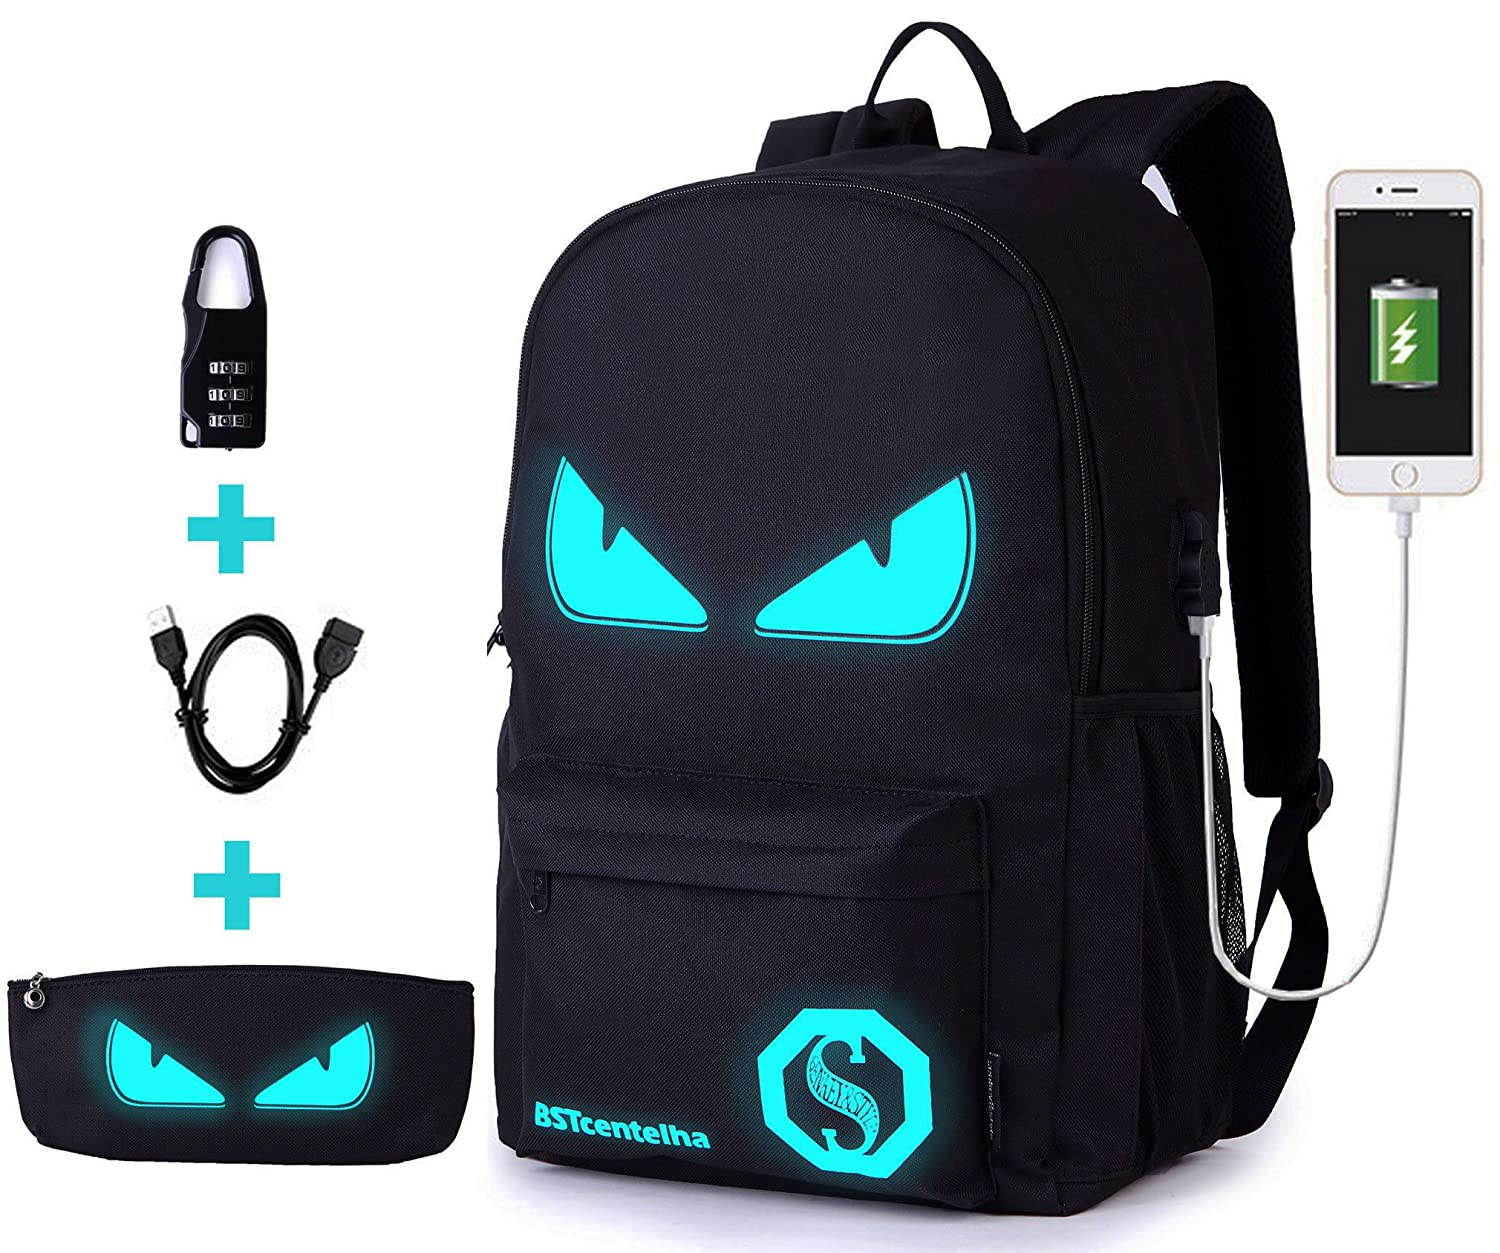 BSTcentelha Anime Luminous Shoulder Bag Lightweight with Laptop Compartments for Students Teens Boy Girl Book Laptop Travel Camping (L) AAAUS029B